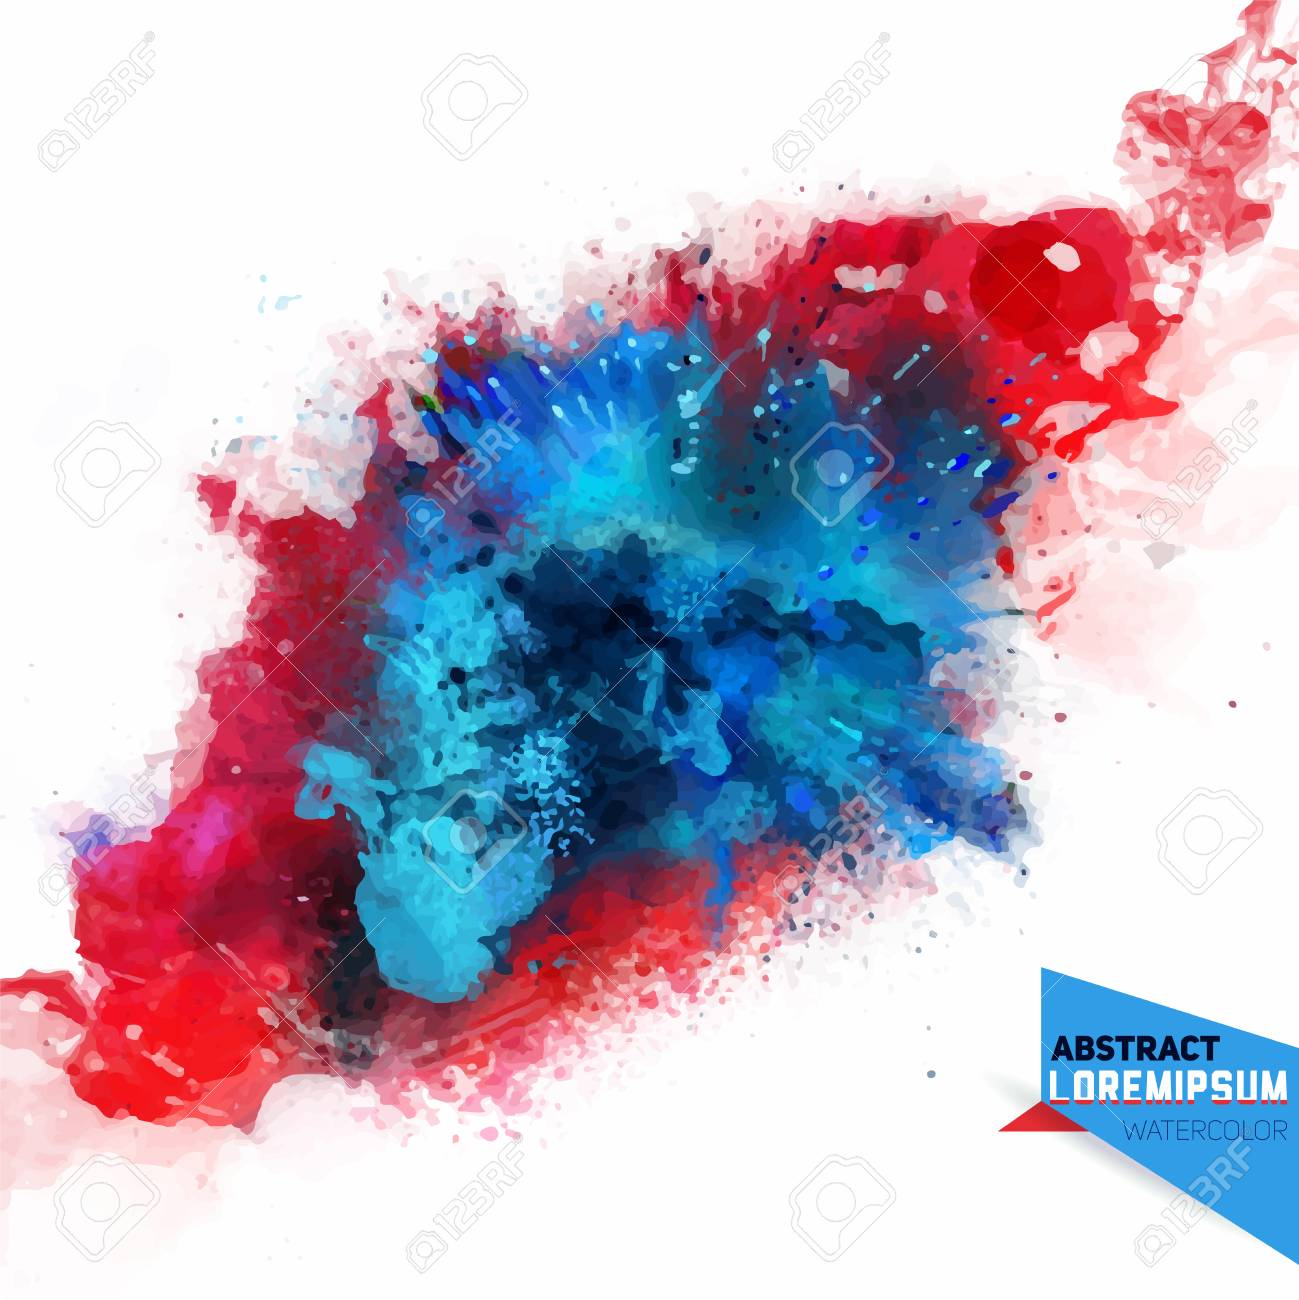 Vector abstraction from a mixture of colors, explosion, color spray, fly away, stains with a spray of water colors,the author's work.Holi.Background for banner, poster, identity,card, web design. - 110177340